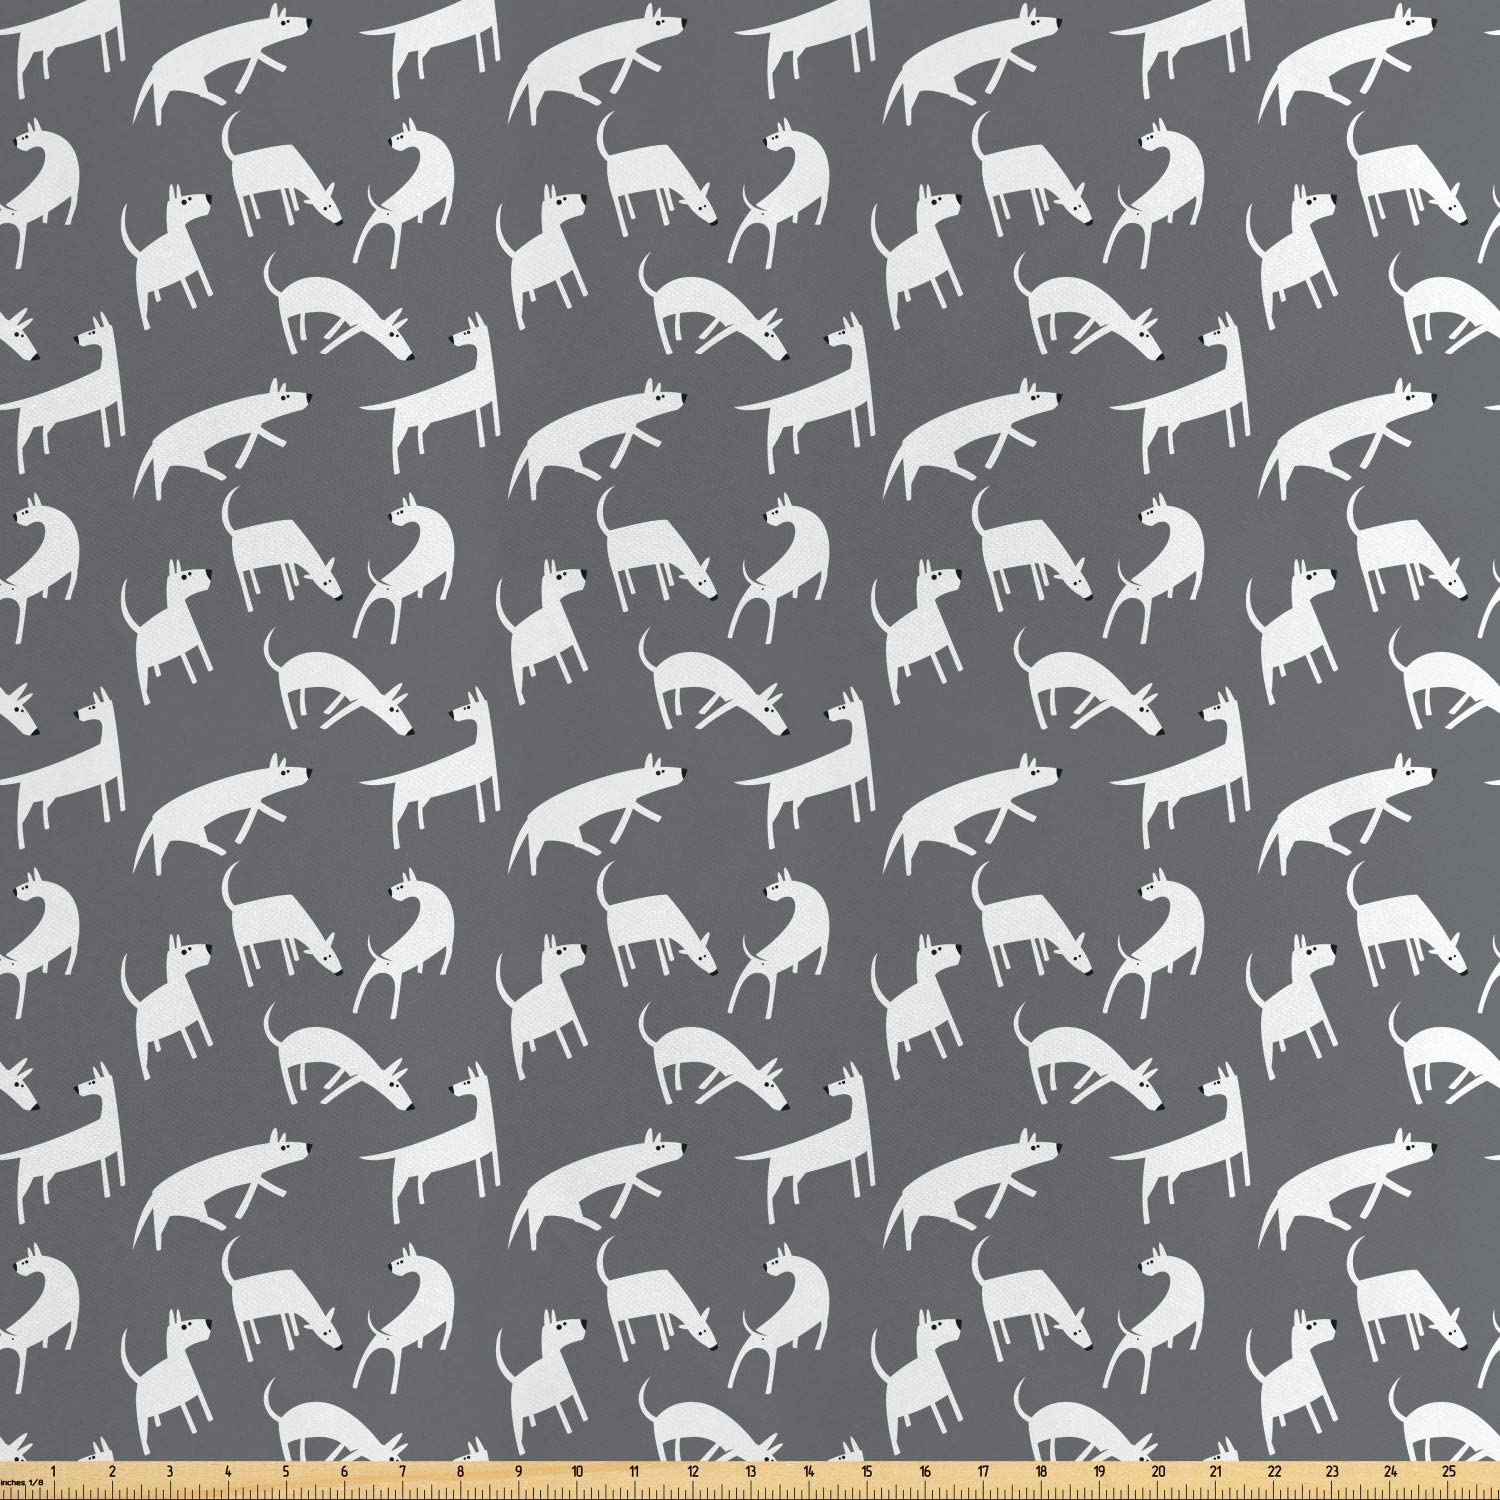 Ambesonne Dog Fabric by The Yard, English Bull Terriers Posing and Jumping Pet Characters Minimalist Flat Design, Decorative Satin Fabric for Home Textiles and Crafts, Grey and White